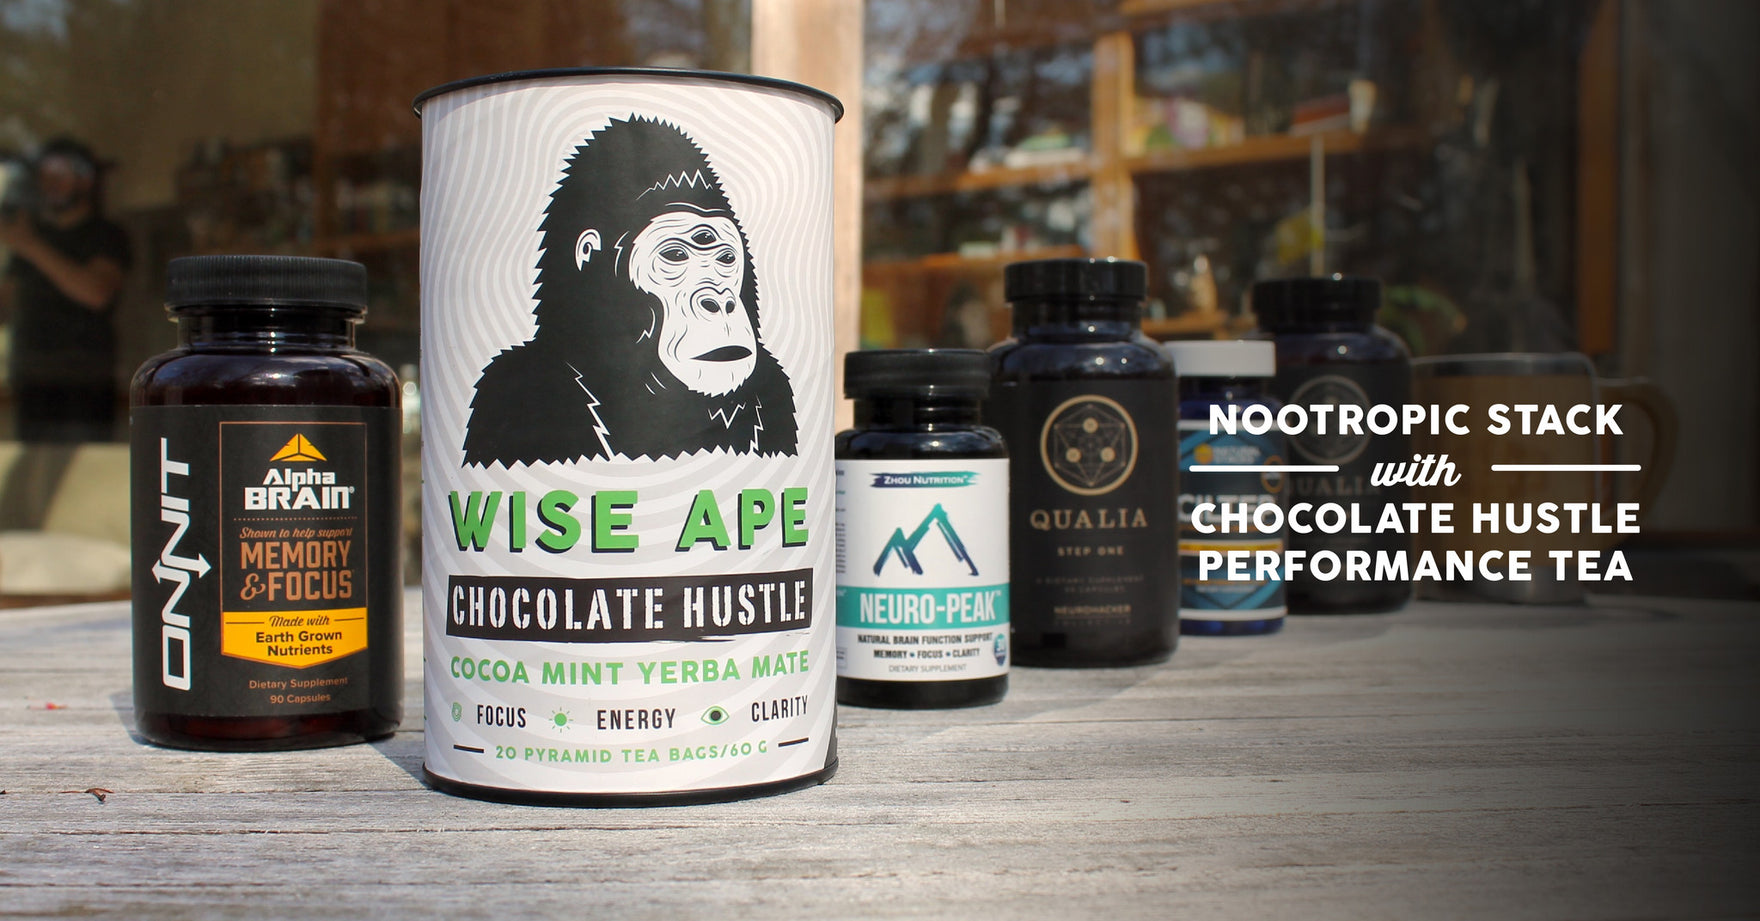 Nootropic Stack with Chocolate Hustle Adaptogenic Tea